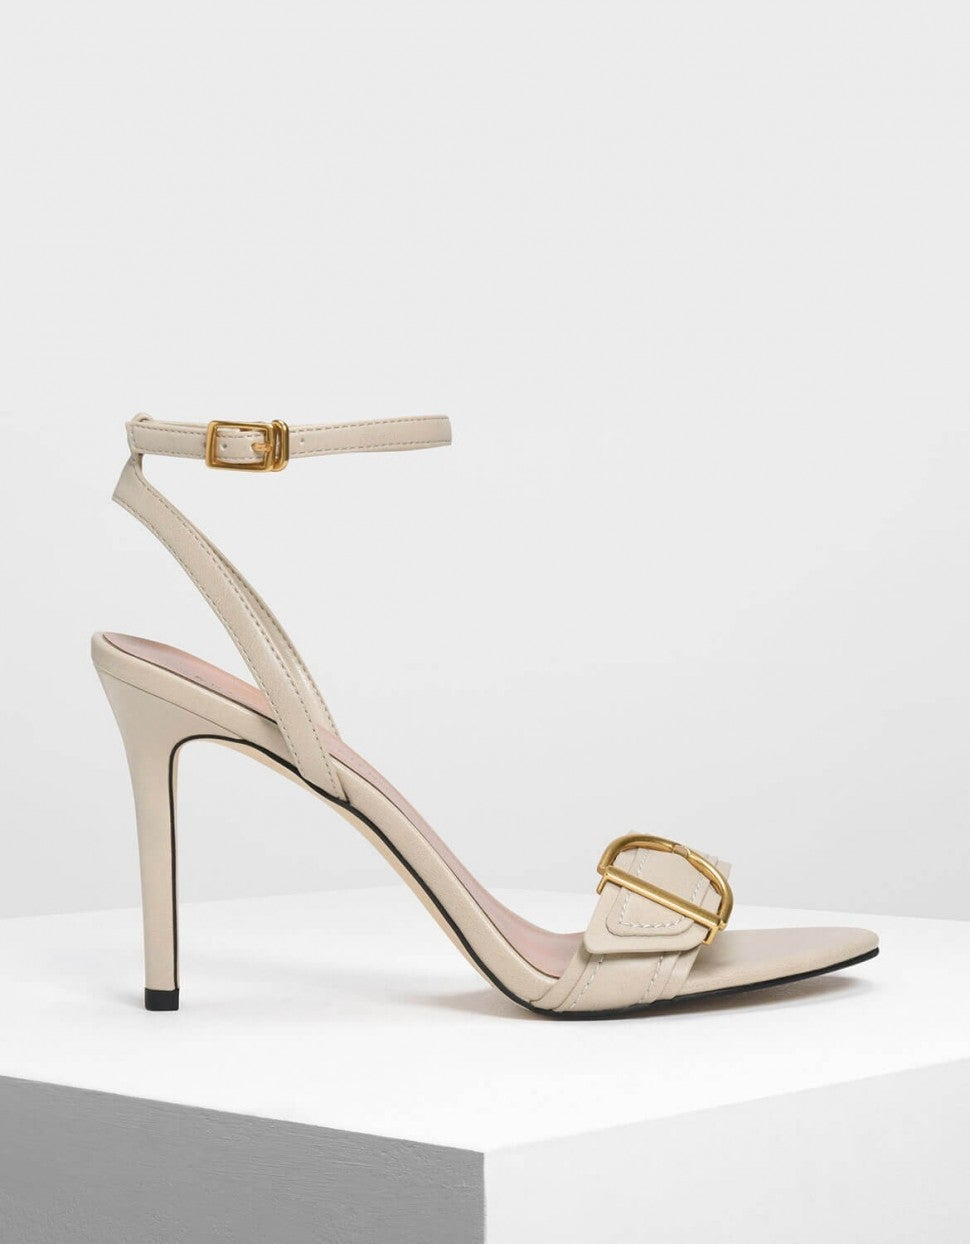 Charles & Keith buckle ankle strap heels